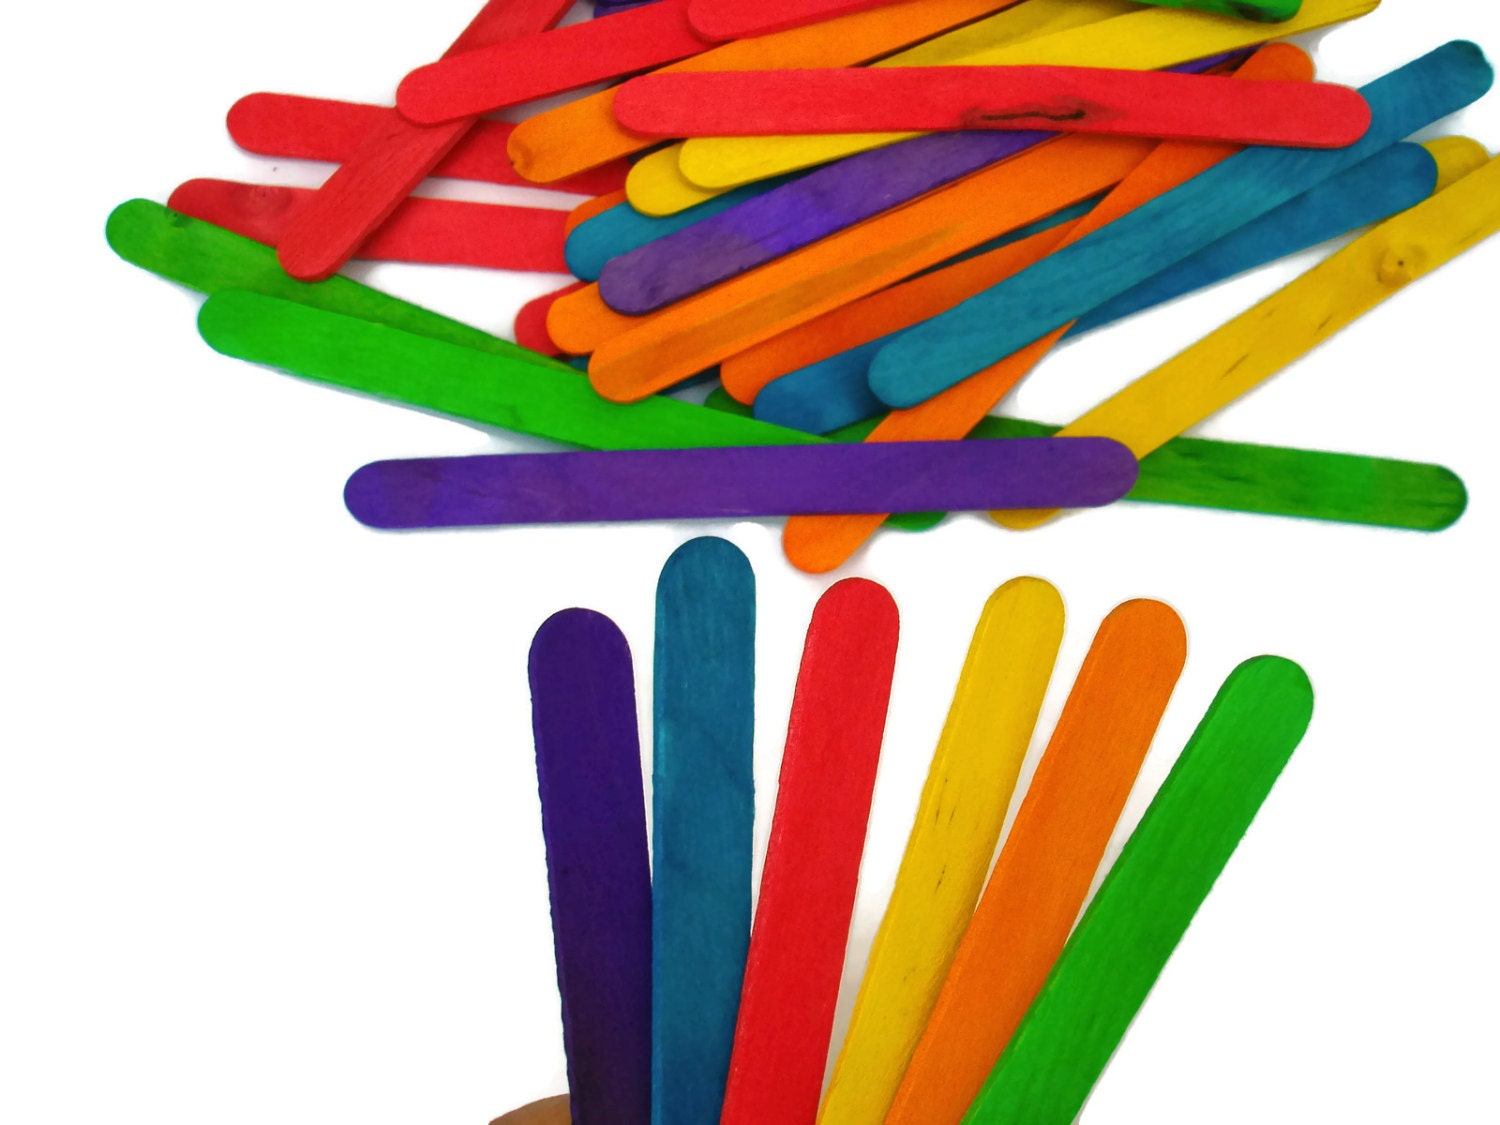 Round wooden sticks for crafts - 50 Colored Craft Sticks Mixed Intense Colors Natural Wooden Sticks In Sets Of 50 Units Popsicle Sticks